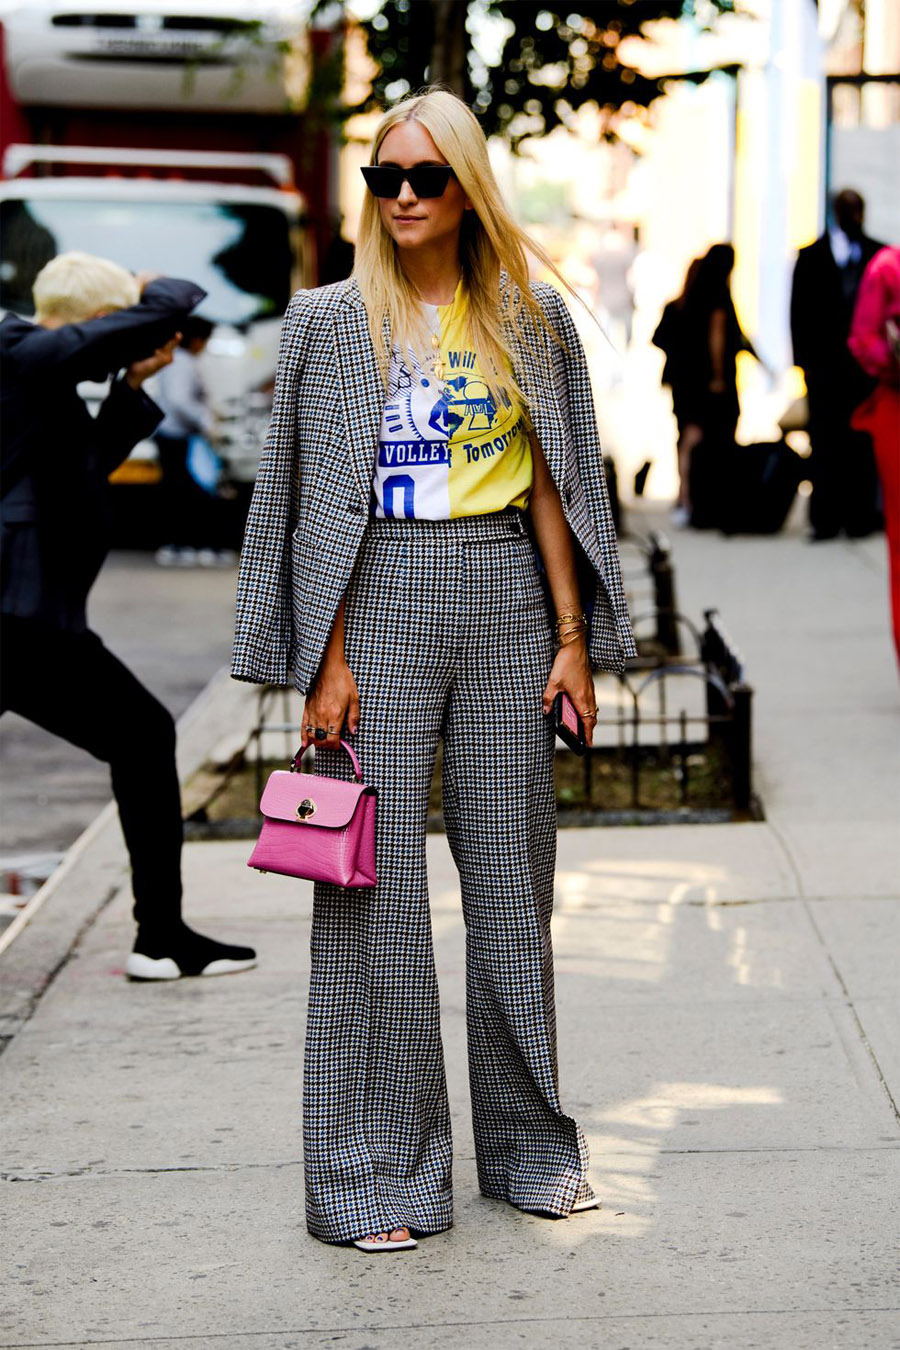 hbz-street-style-nyfw-ss2020-day1-16-1568033125